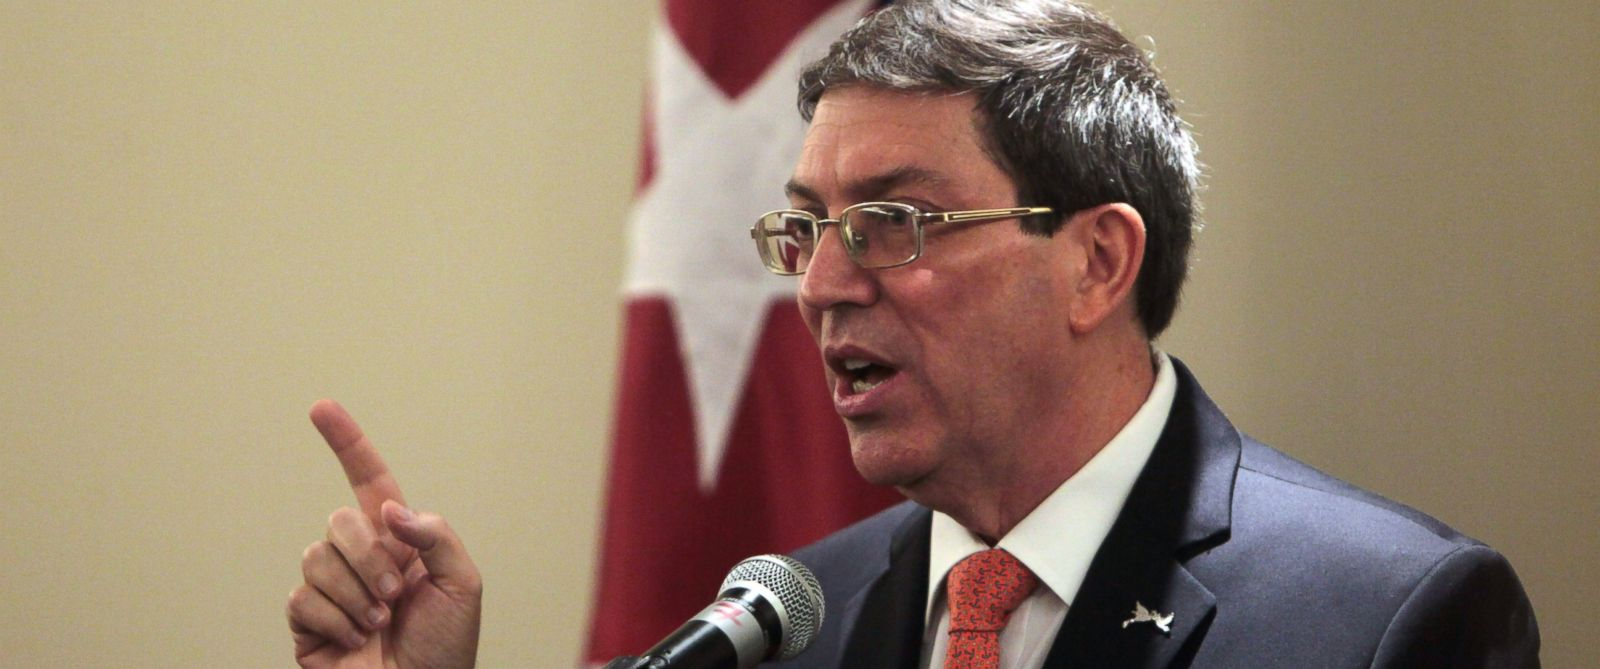 PHOTO: Cubas Foreign Minister Bruno Rodriguez speaks during a press conference, during the VII Summit of the Americas in Panama City, Saturday, April 11, 2015.